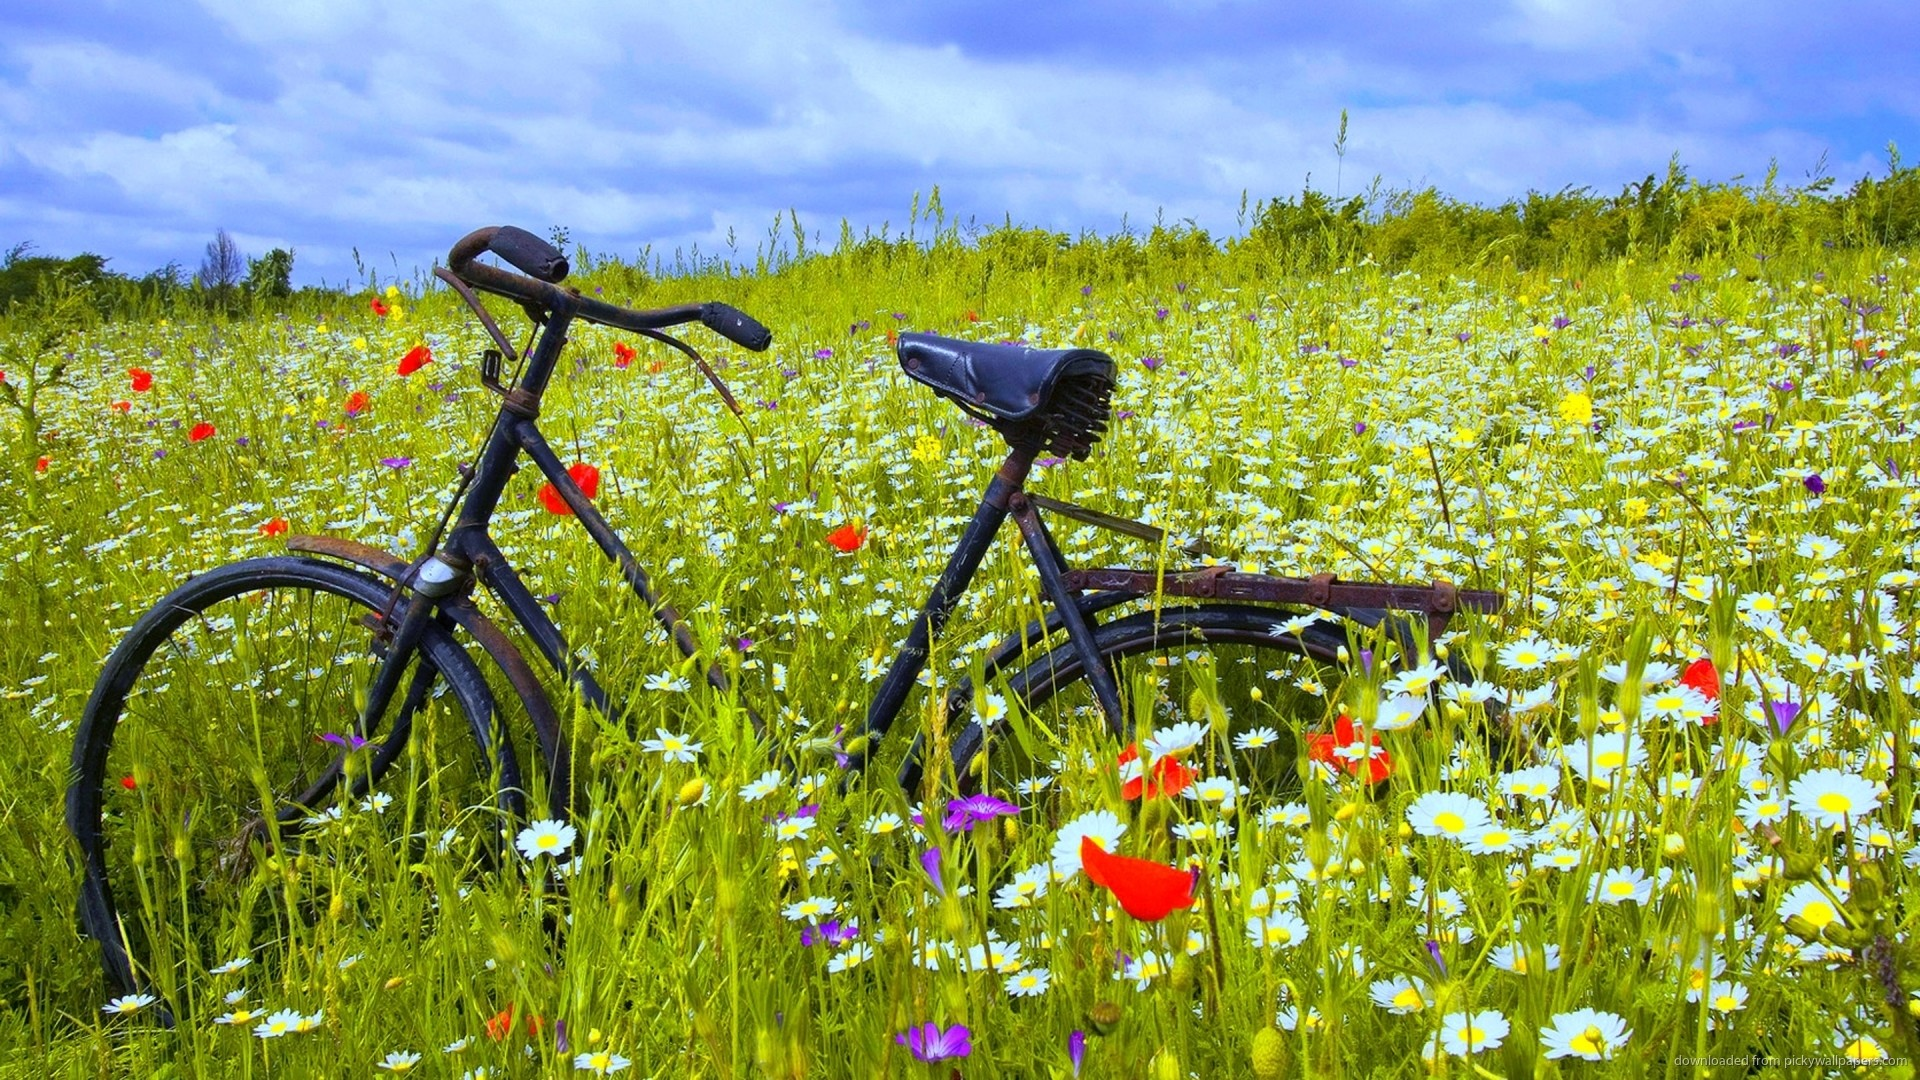 Bicycle In Flower Field Wallpaper picture